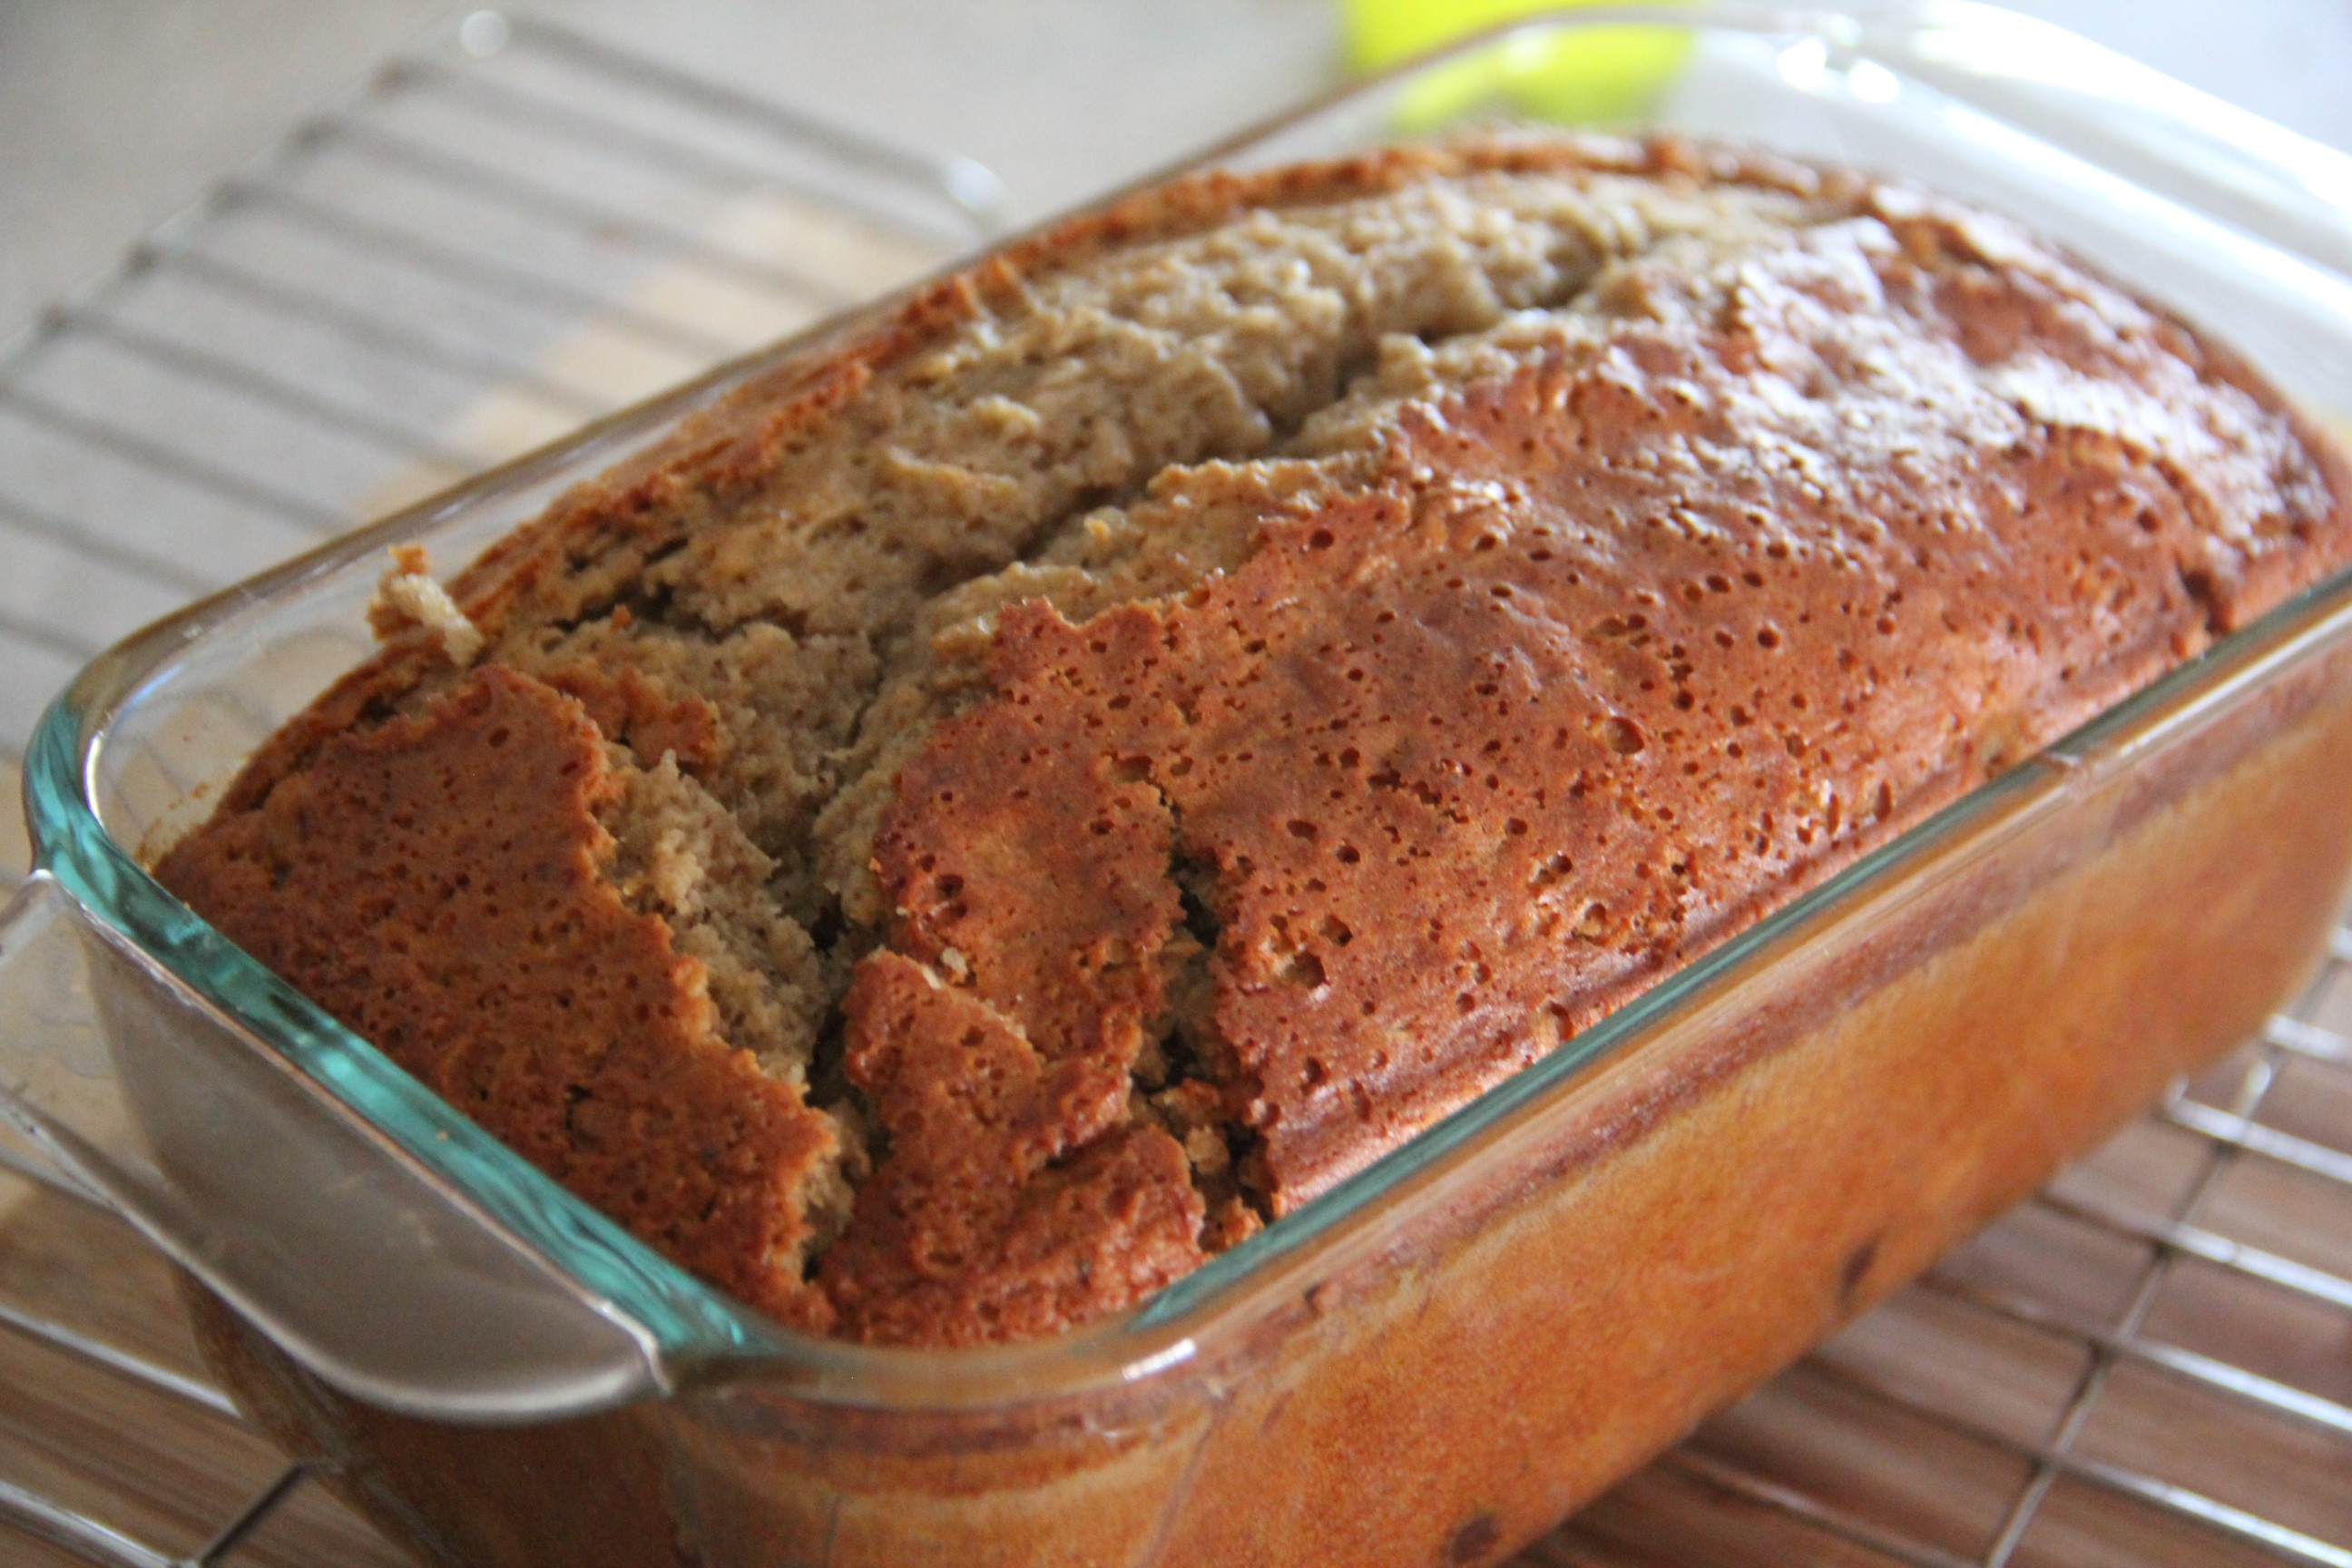 Our Homeschool Day Banana Bread #iHN @DinkerGiggles